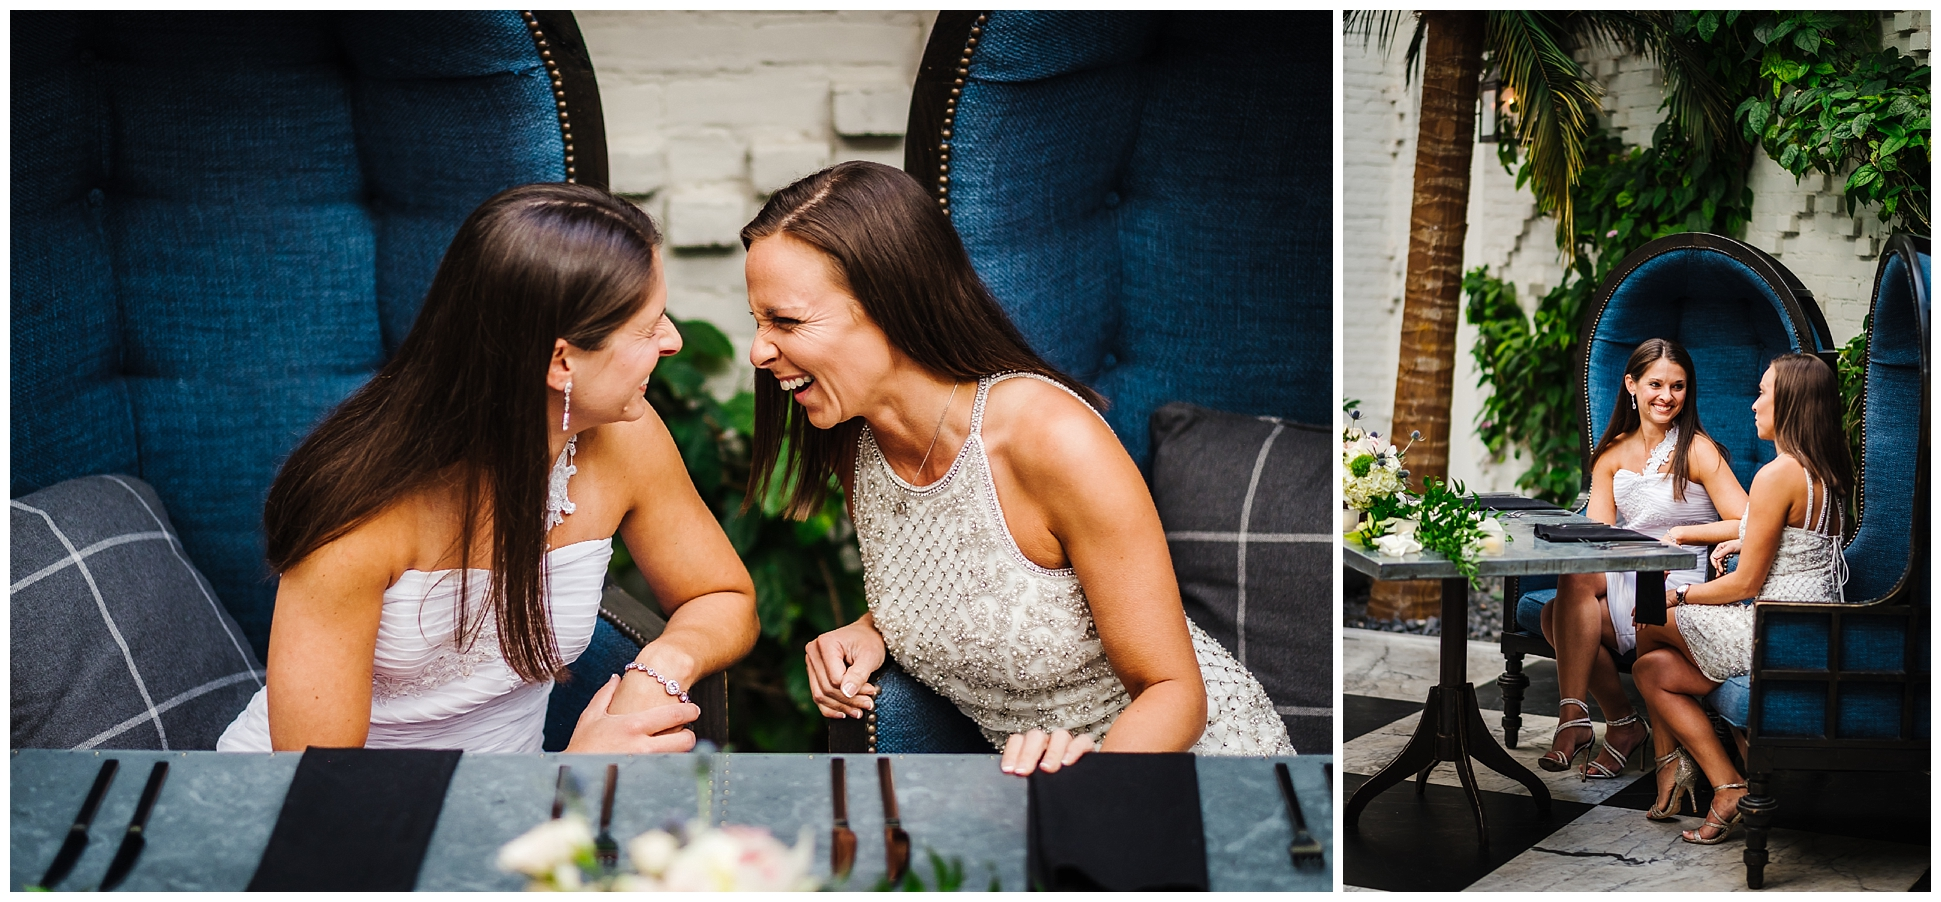 tampa-wedding-photography-oxford-exchange-reception-same-sex-orchids-greenery-travel_0023.jpg